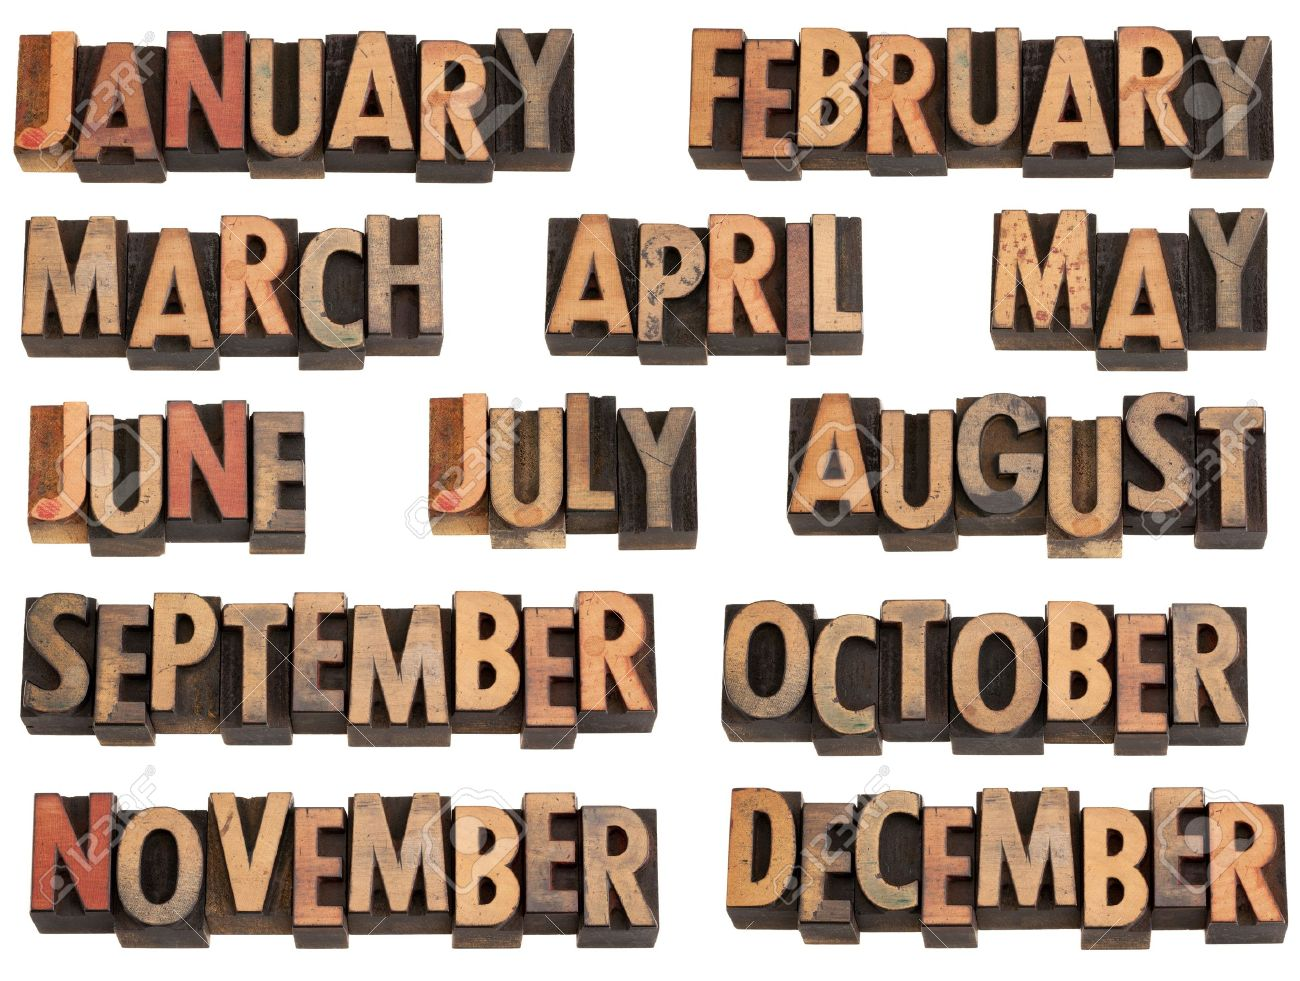 12 months of the year from January to December in vintage wood